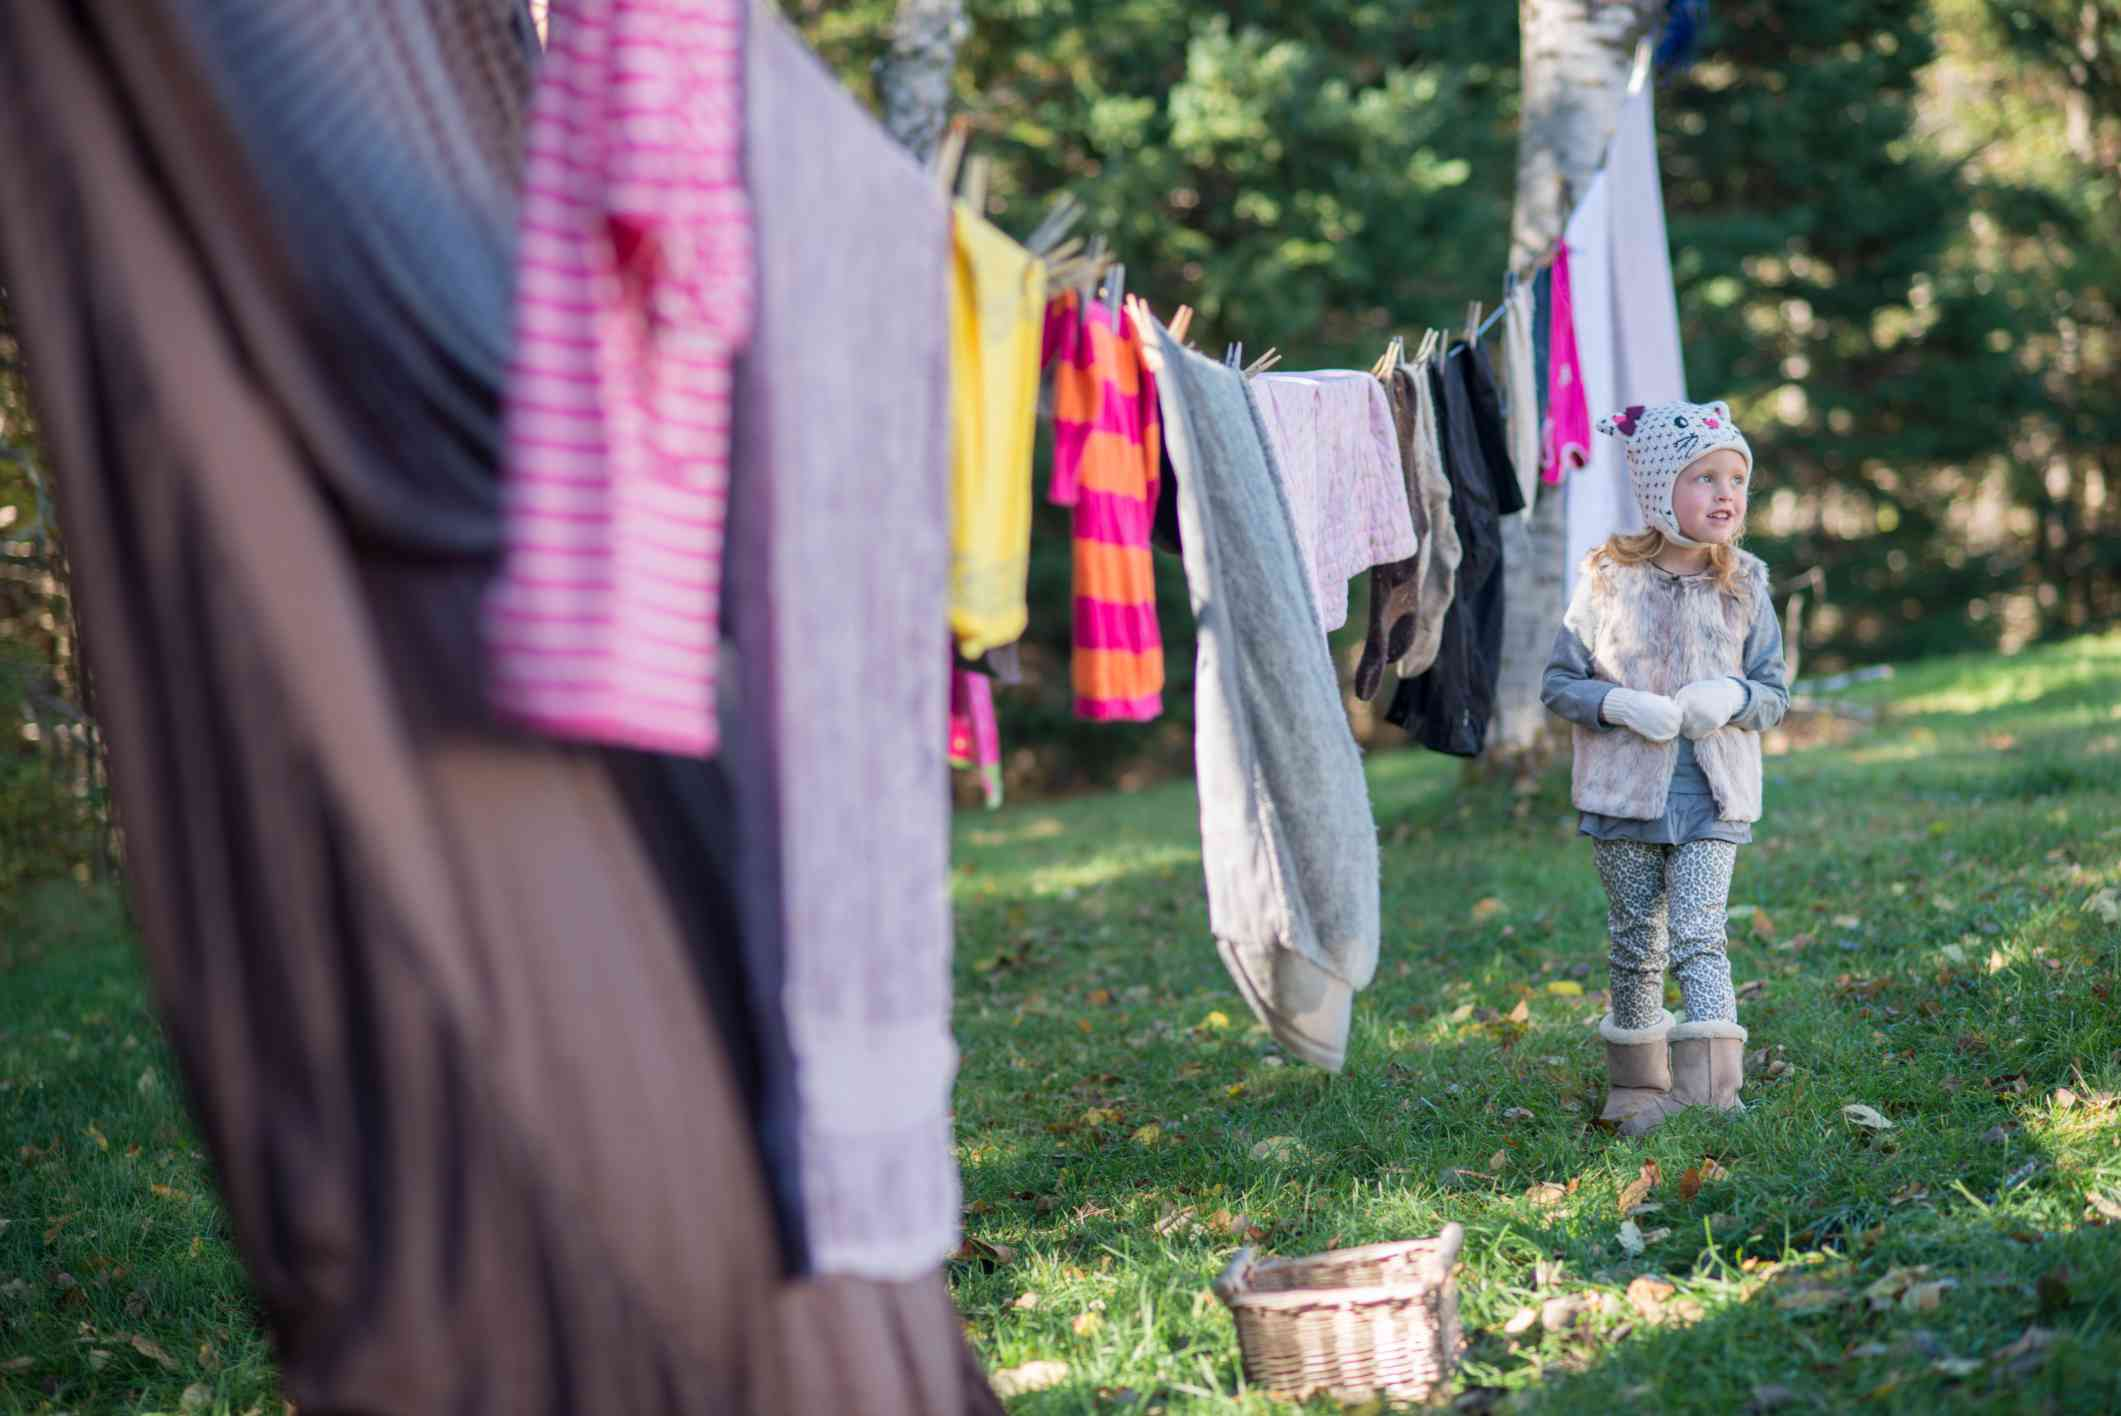 Girl Standing By Clothesline